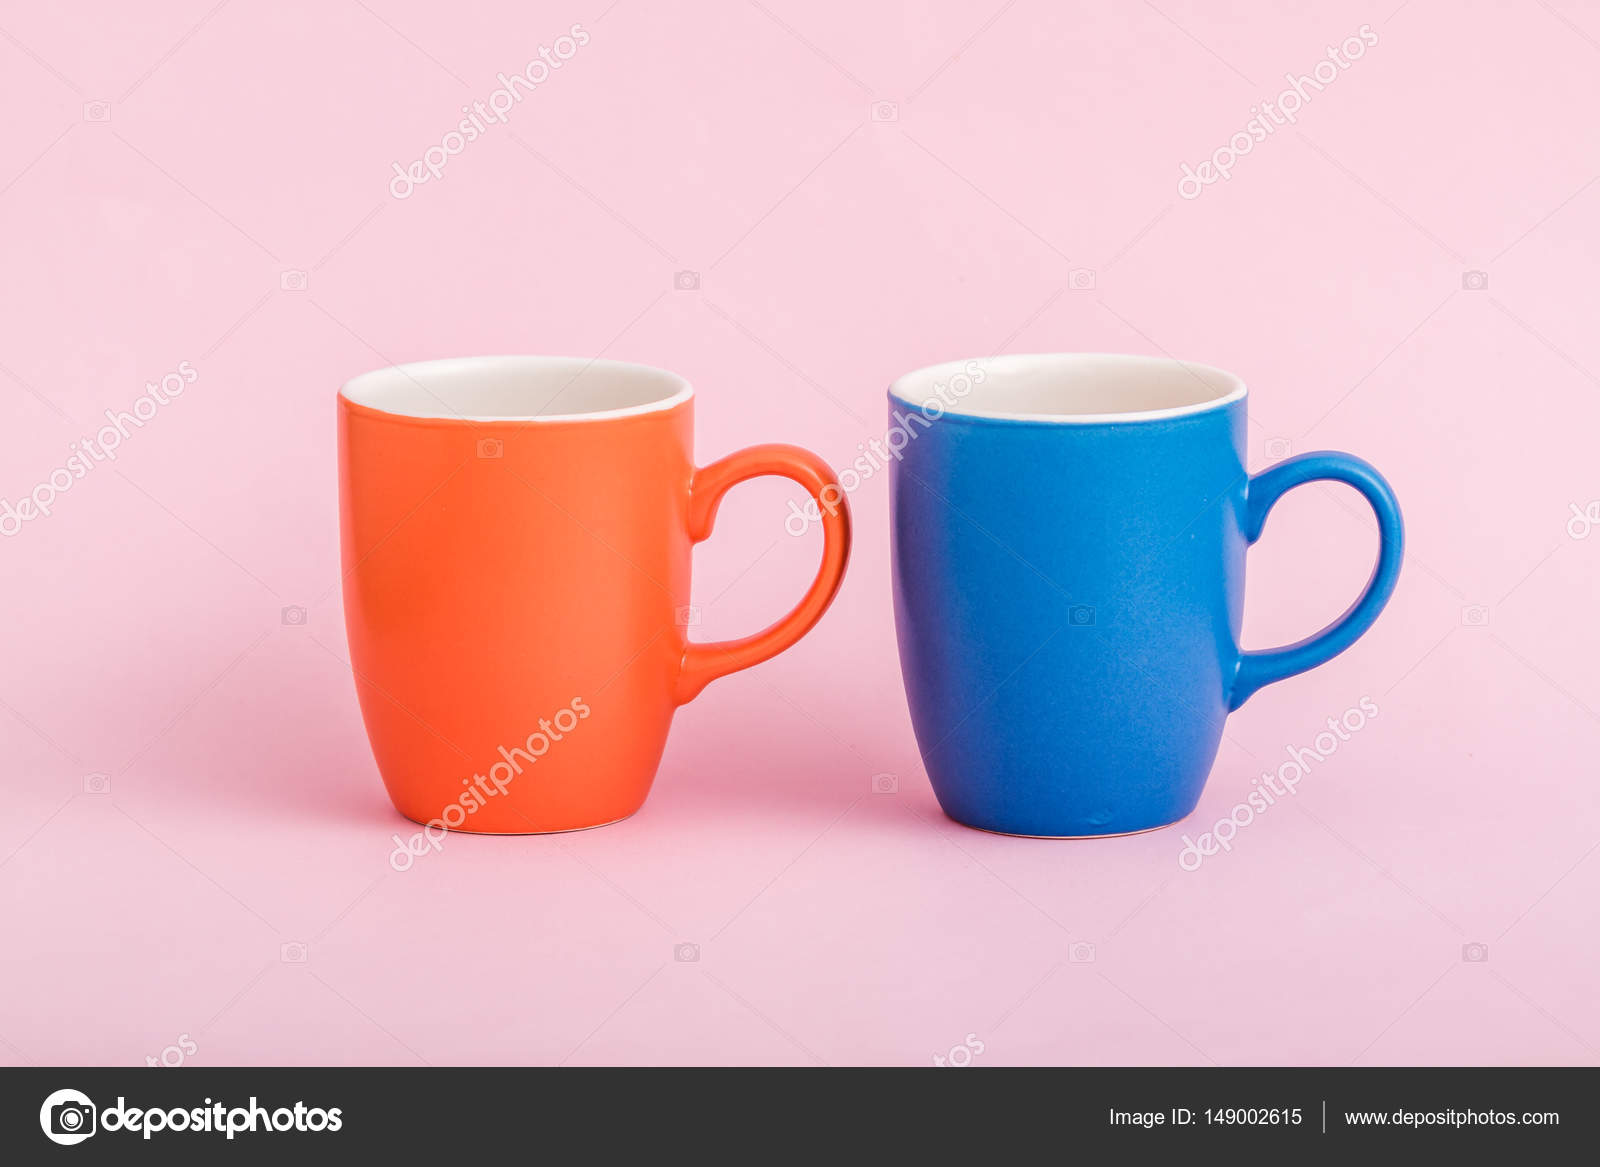 Colorful Coffee Mugs On Pink Background Stock Photo Hskoken. Nonsensical ...